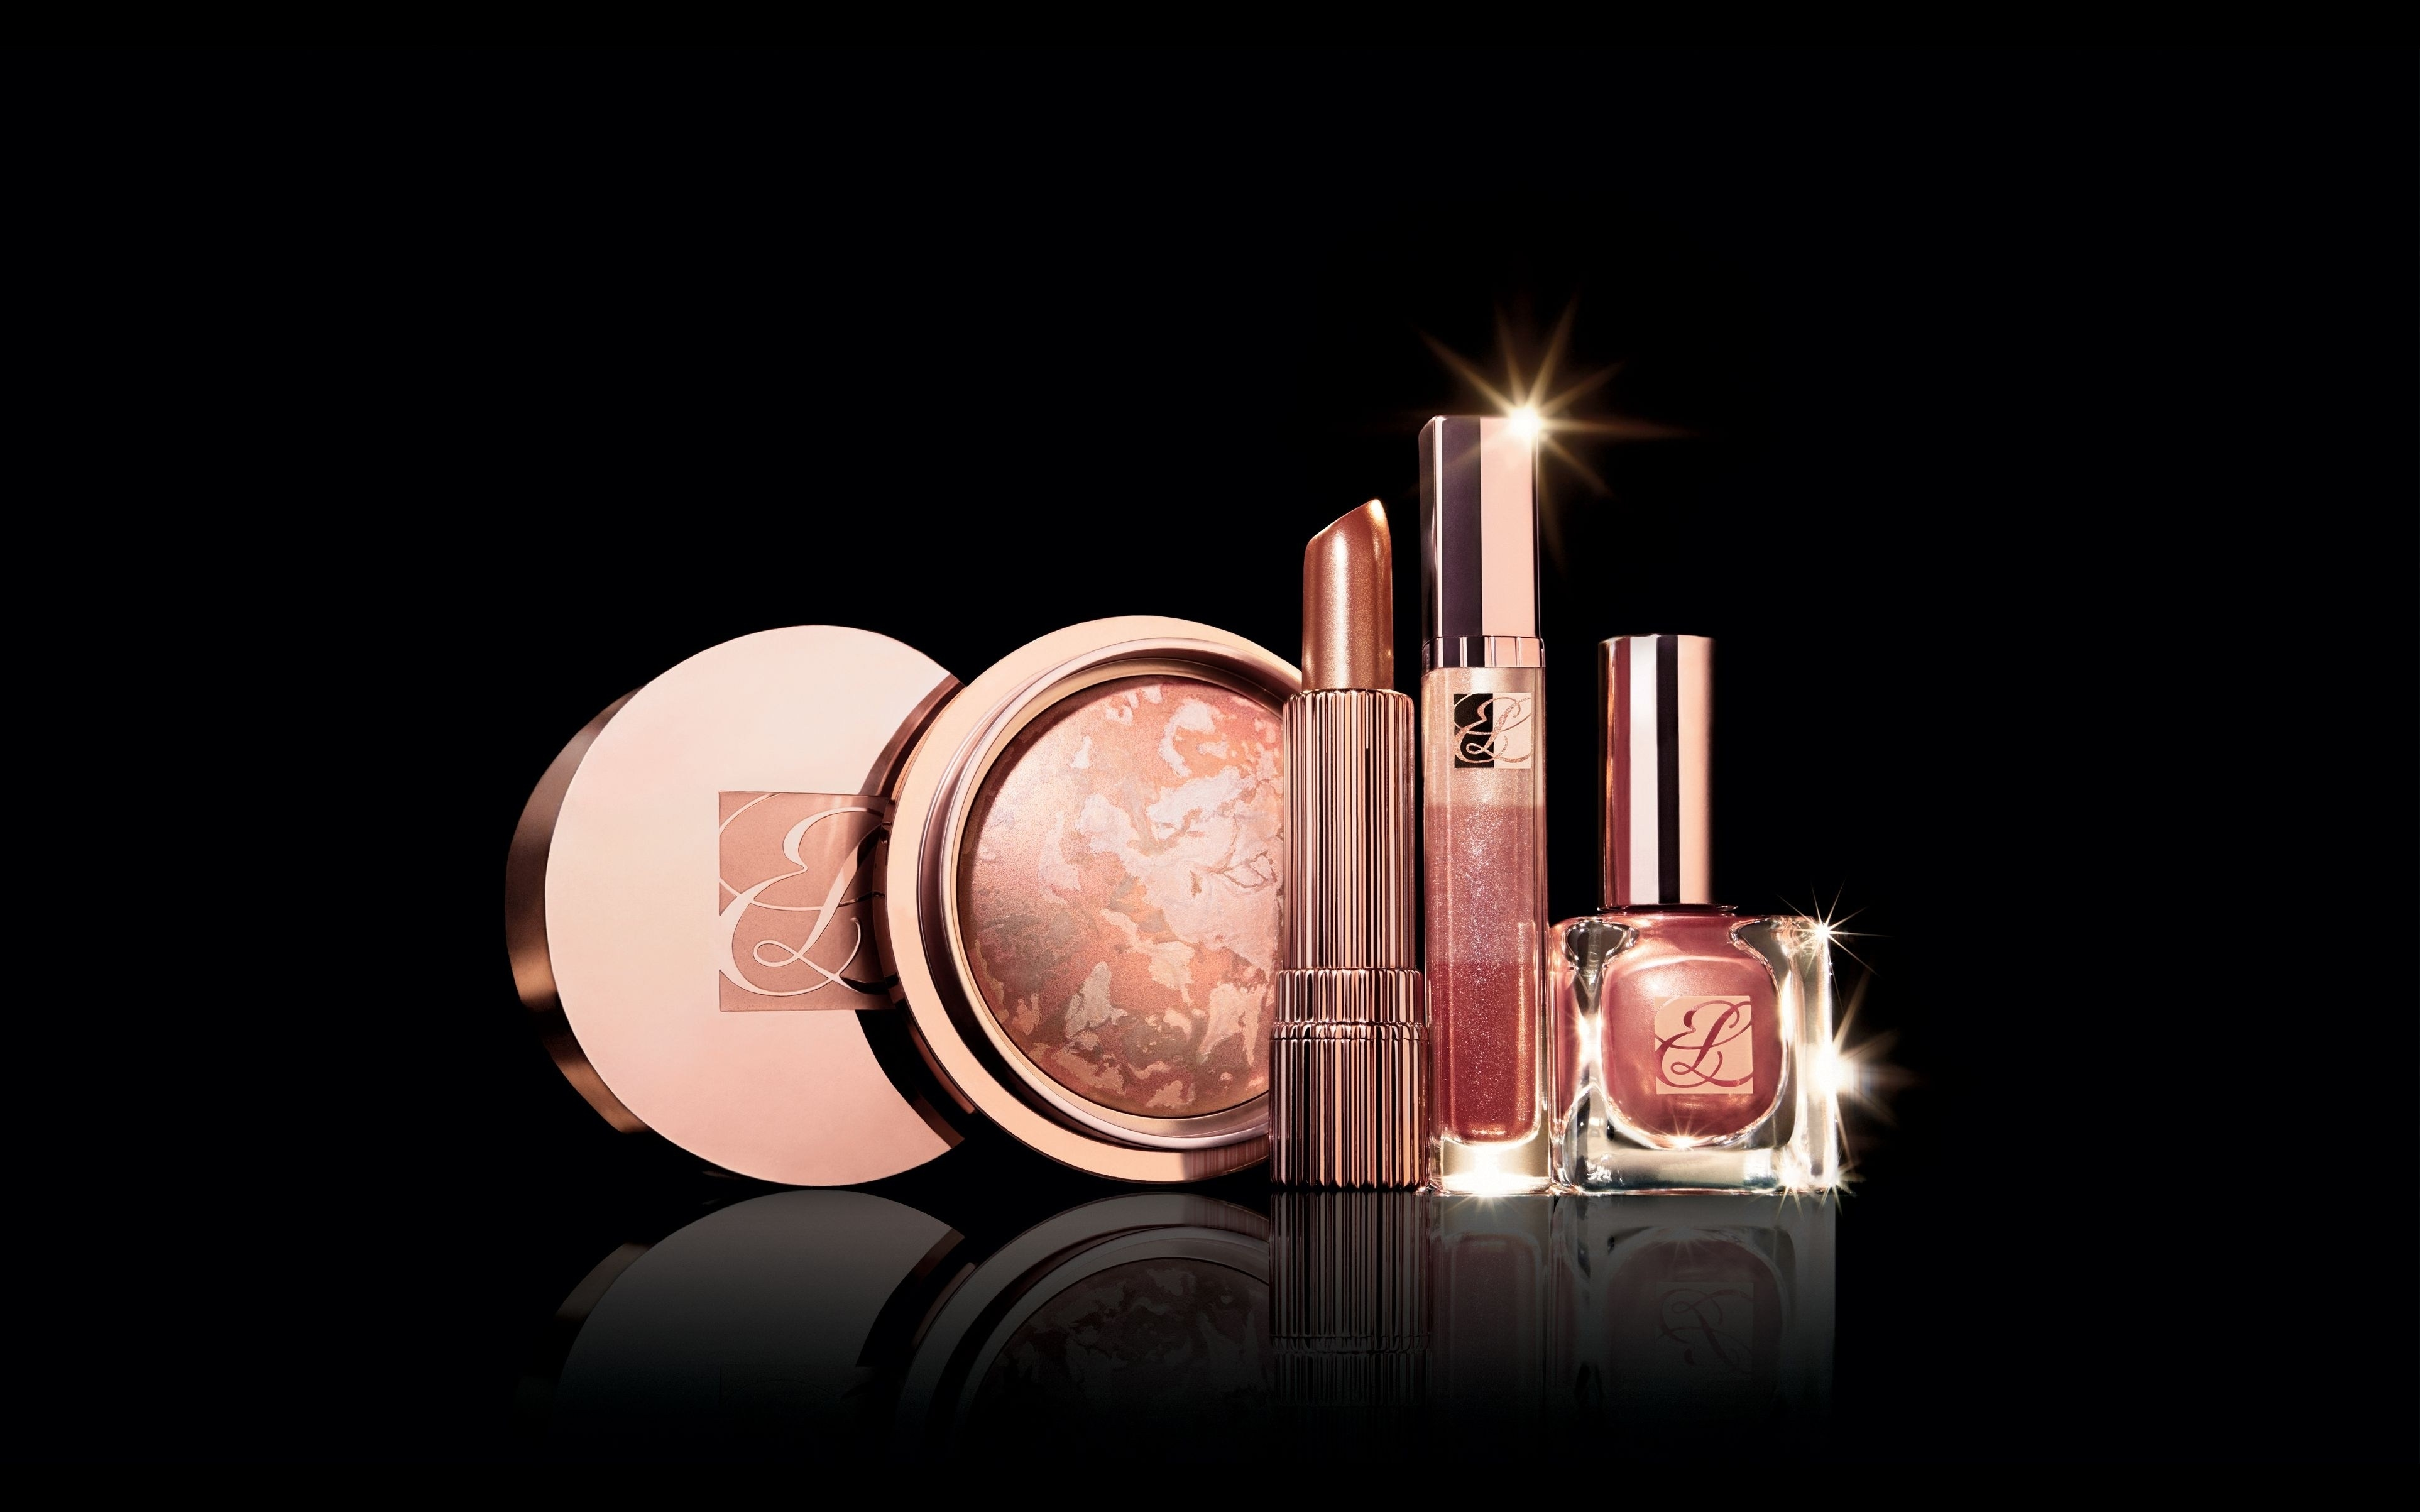 makeup brands What Are The Best Makeup Brands? what are the best makeup brands 0